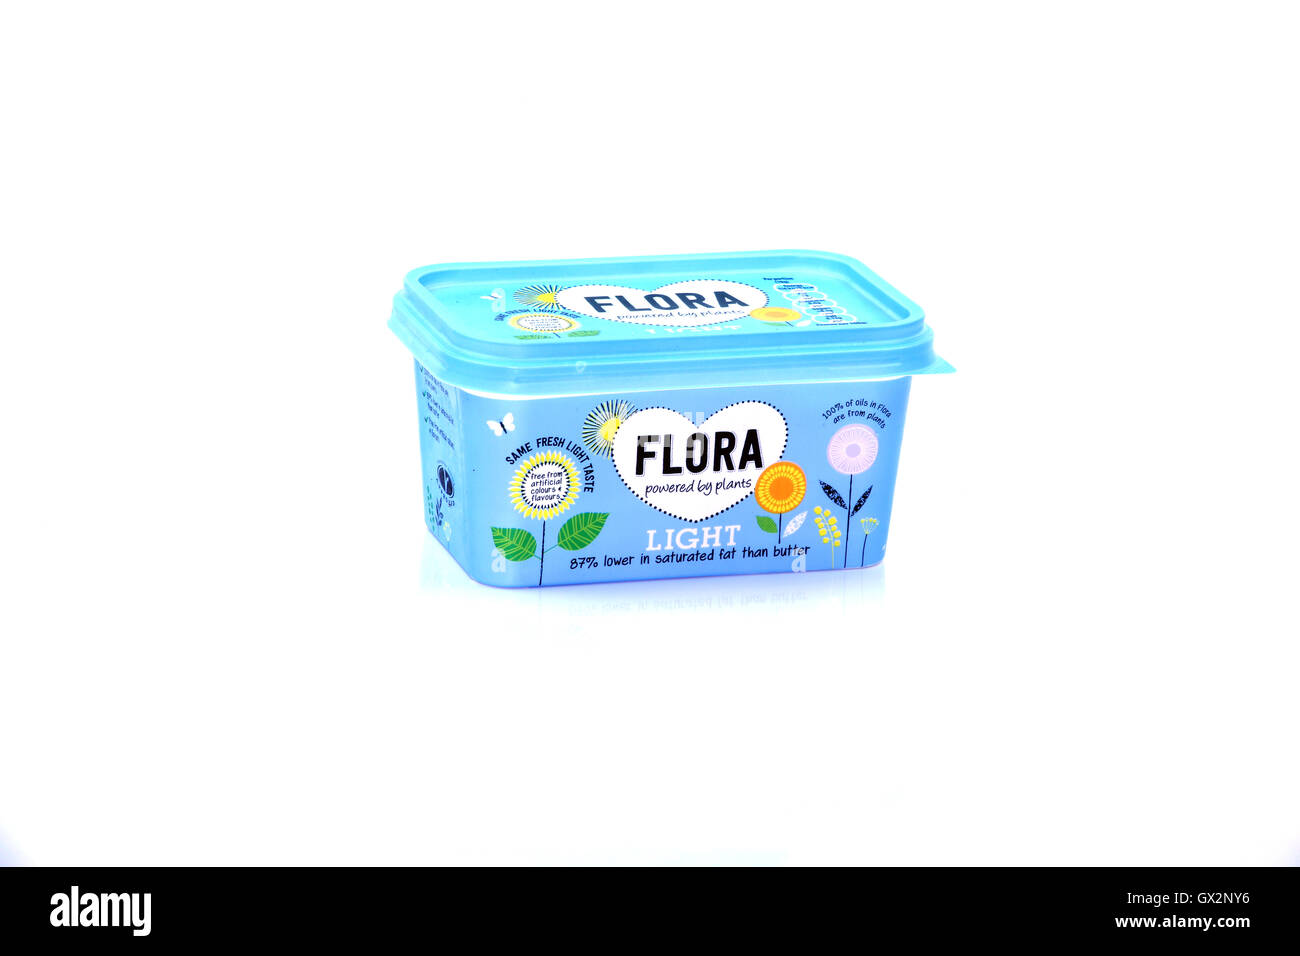 Plastic container of Flora light spread - Stock Image